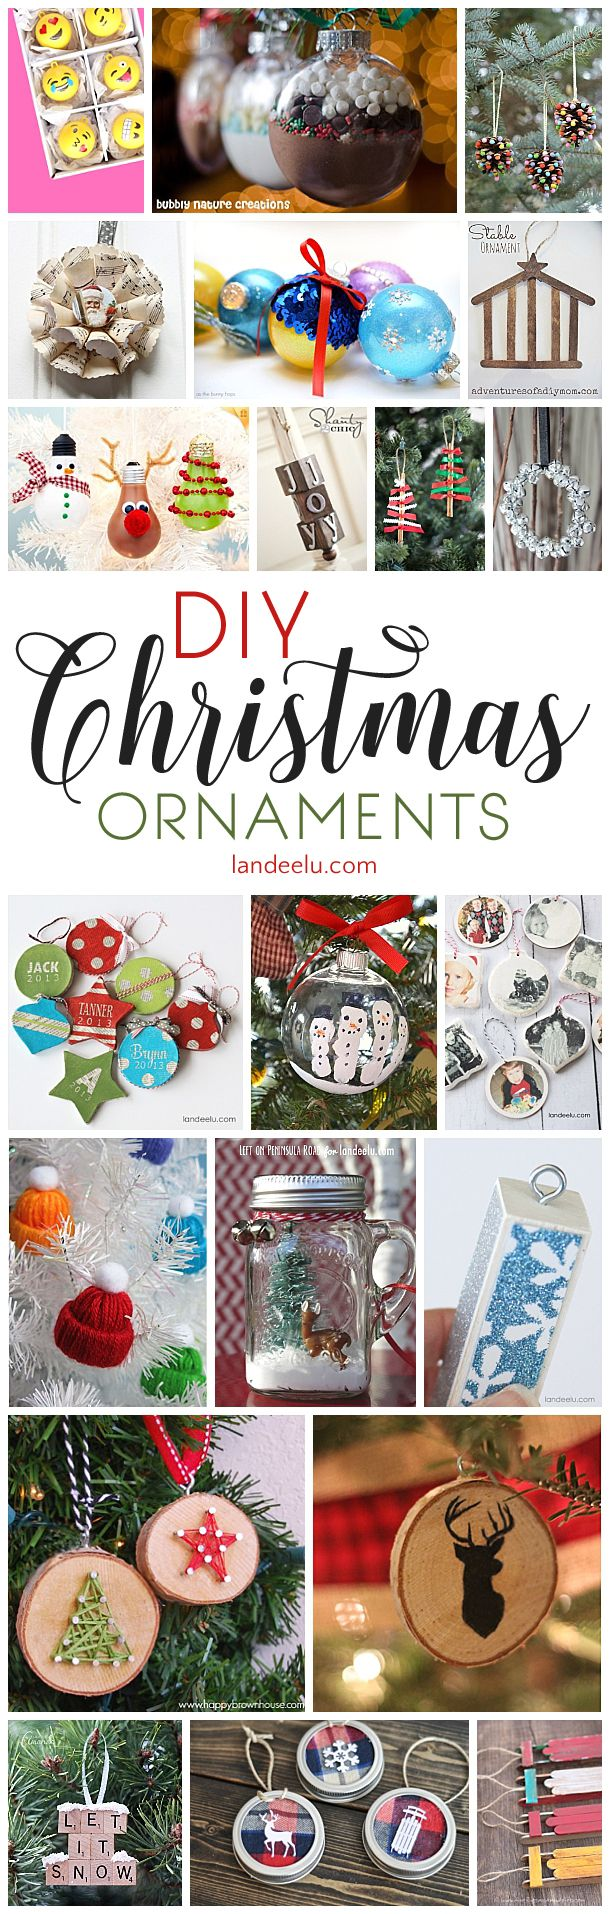 485 best ho ho ho images on pinterest christmas ideas christmas diy christmas ornaments to make for a festive do it yourself holiday cheap easy solutioingenieria Gallery